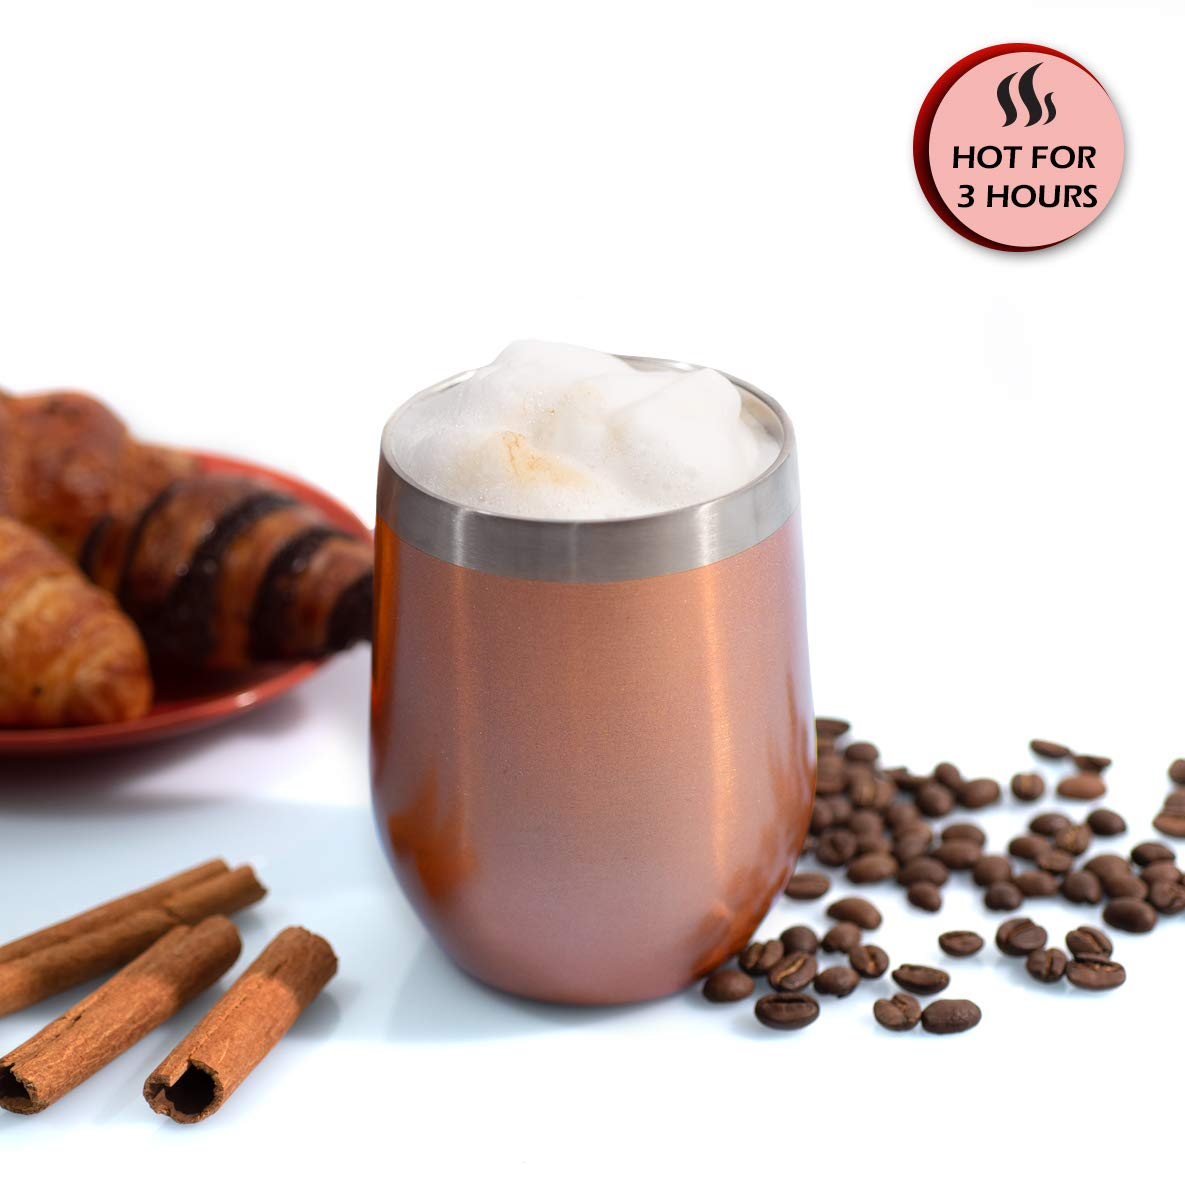 12 oz Wine Tumbler Stemless Glass with Lid, Set of 2 Stainless Steel Double-Insulated for Wine, Coffee, Drinks, Champagne, Cocktails, Rose Gold, Comes with Bonus: 2 Straws, Brush 2 Extra Lid Sealers